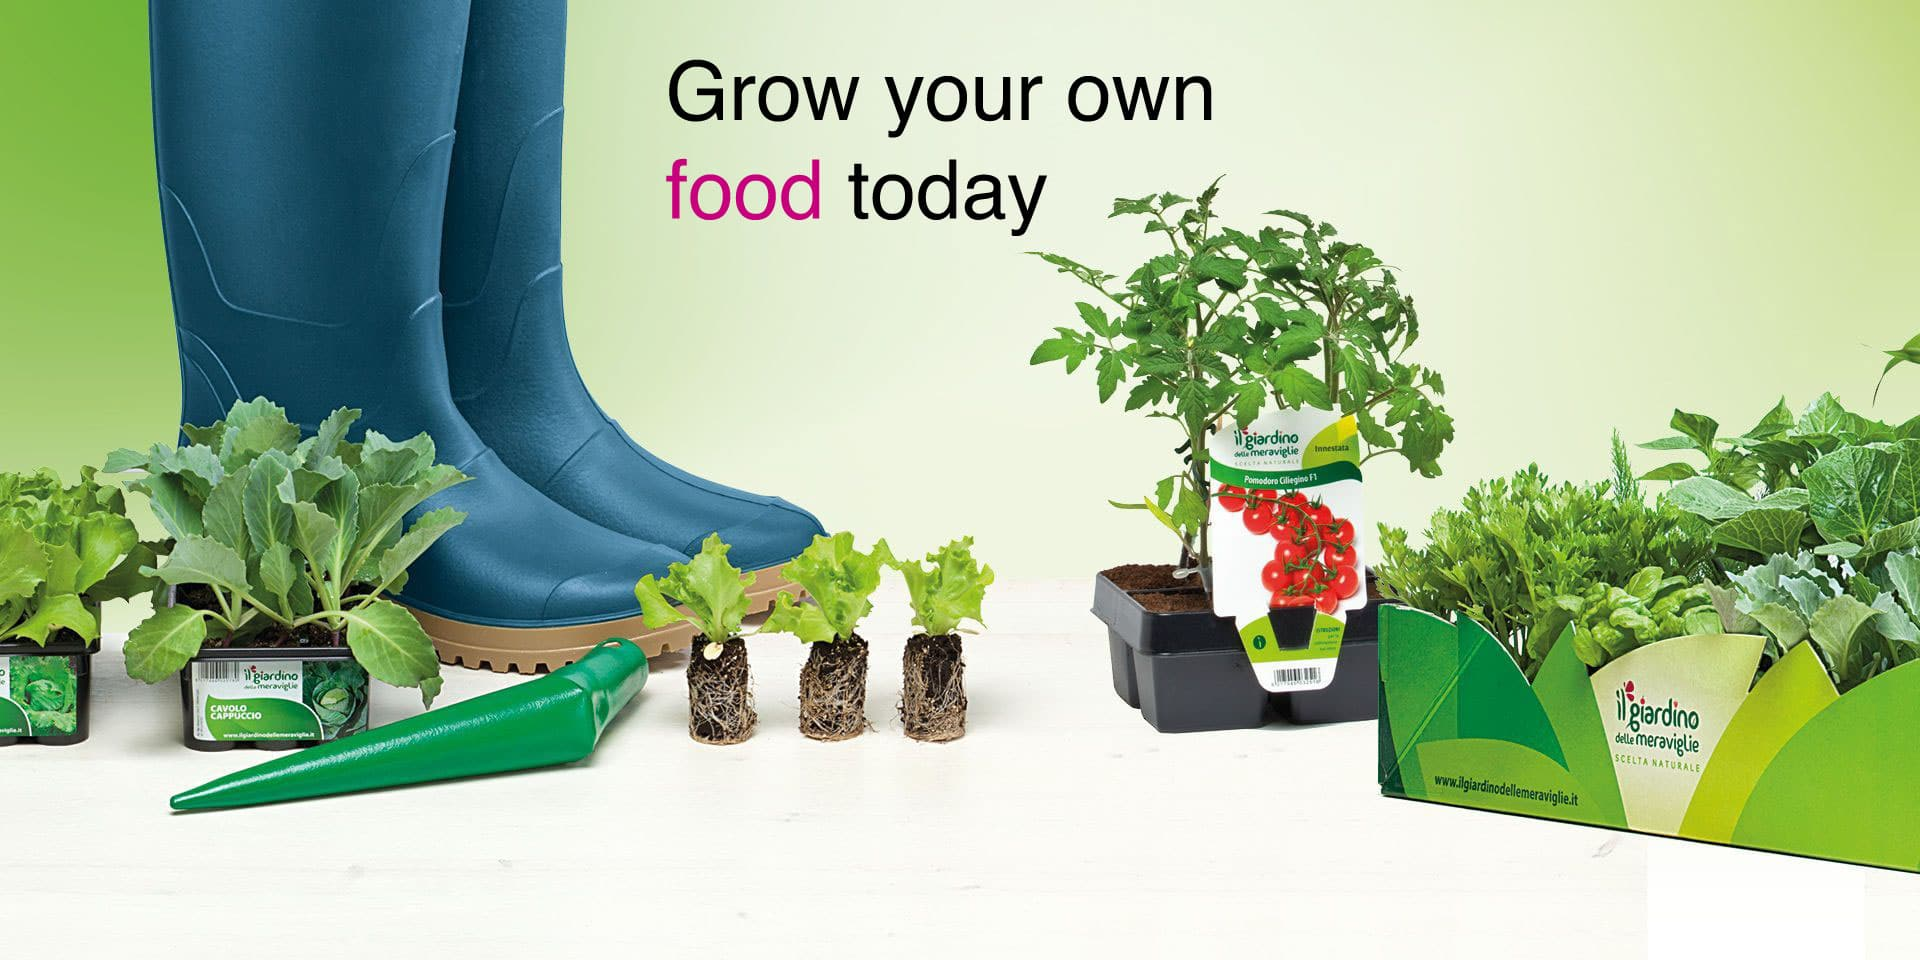 Grow your own food today